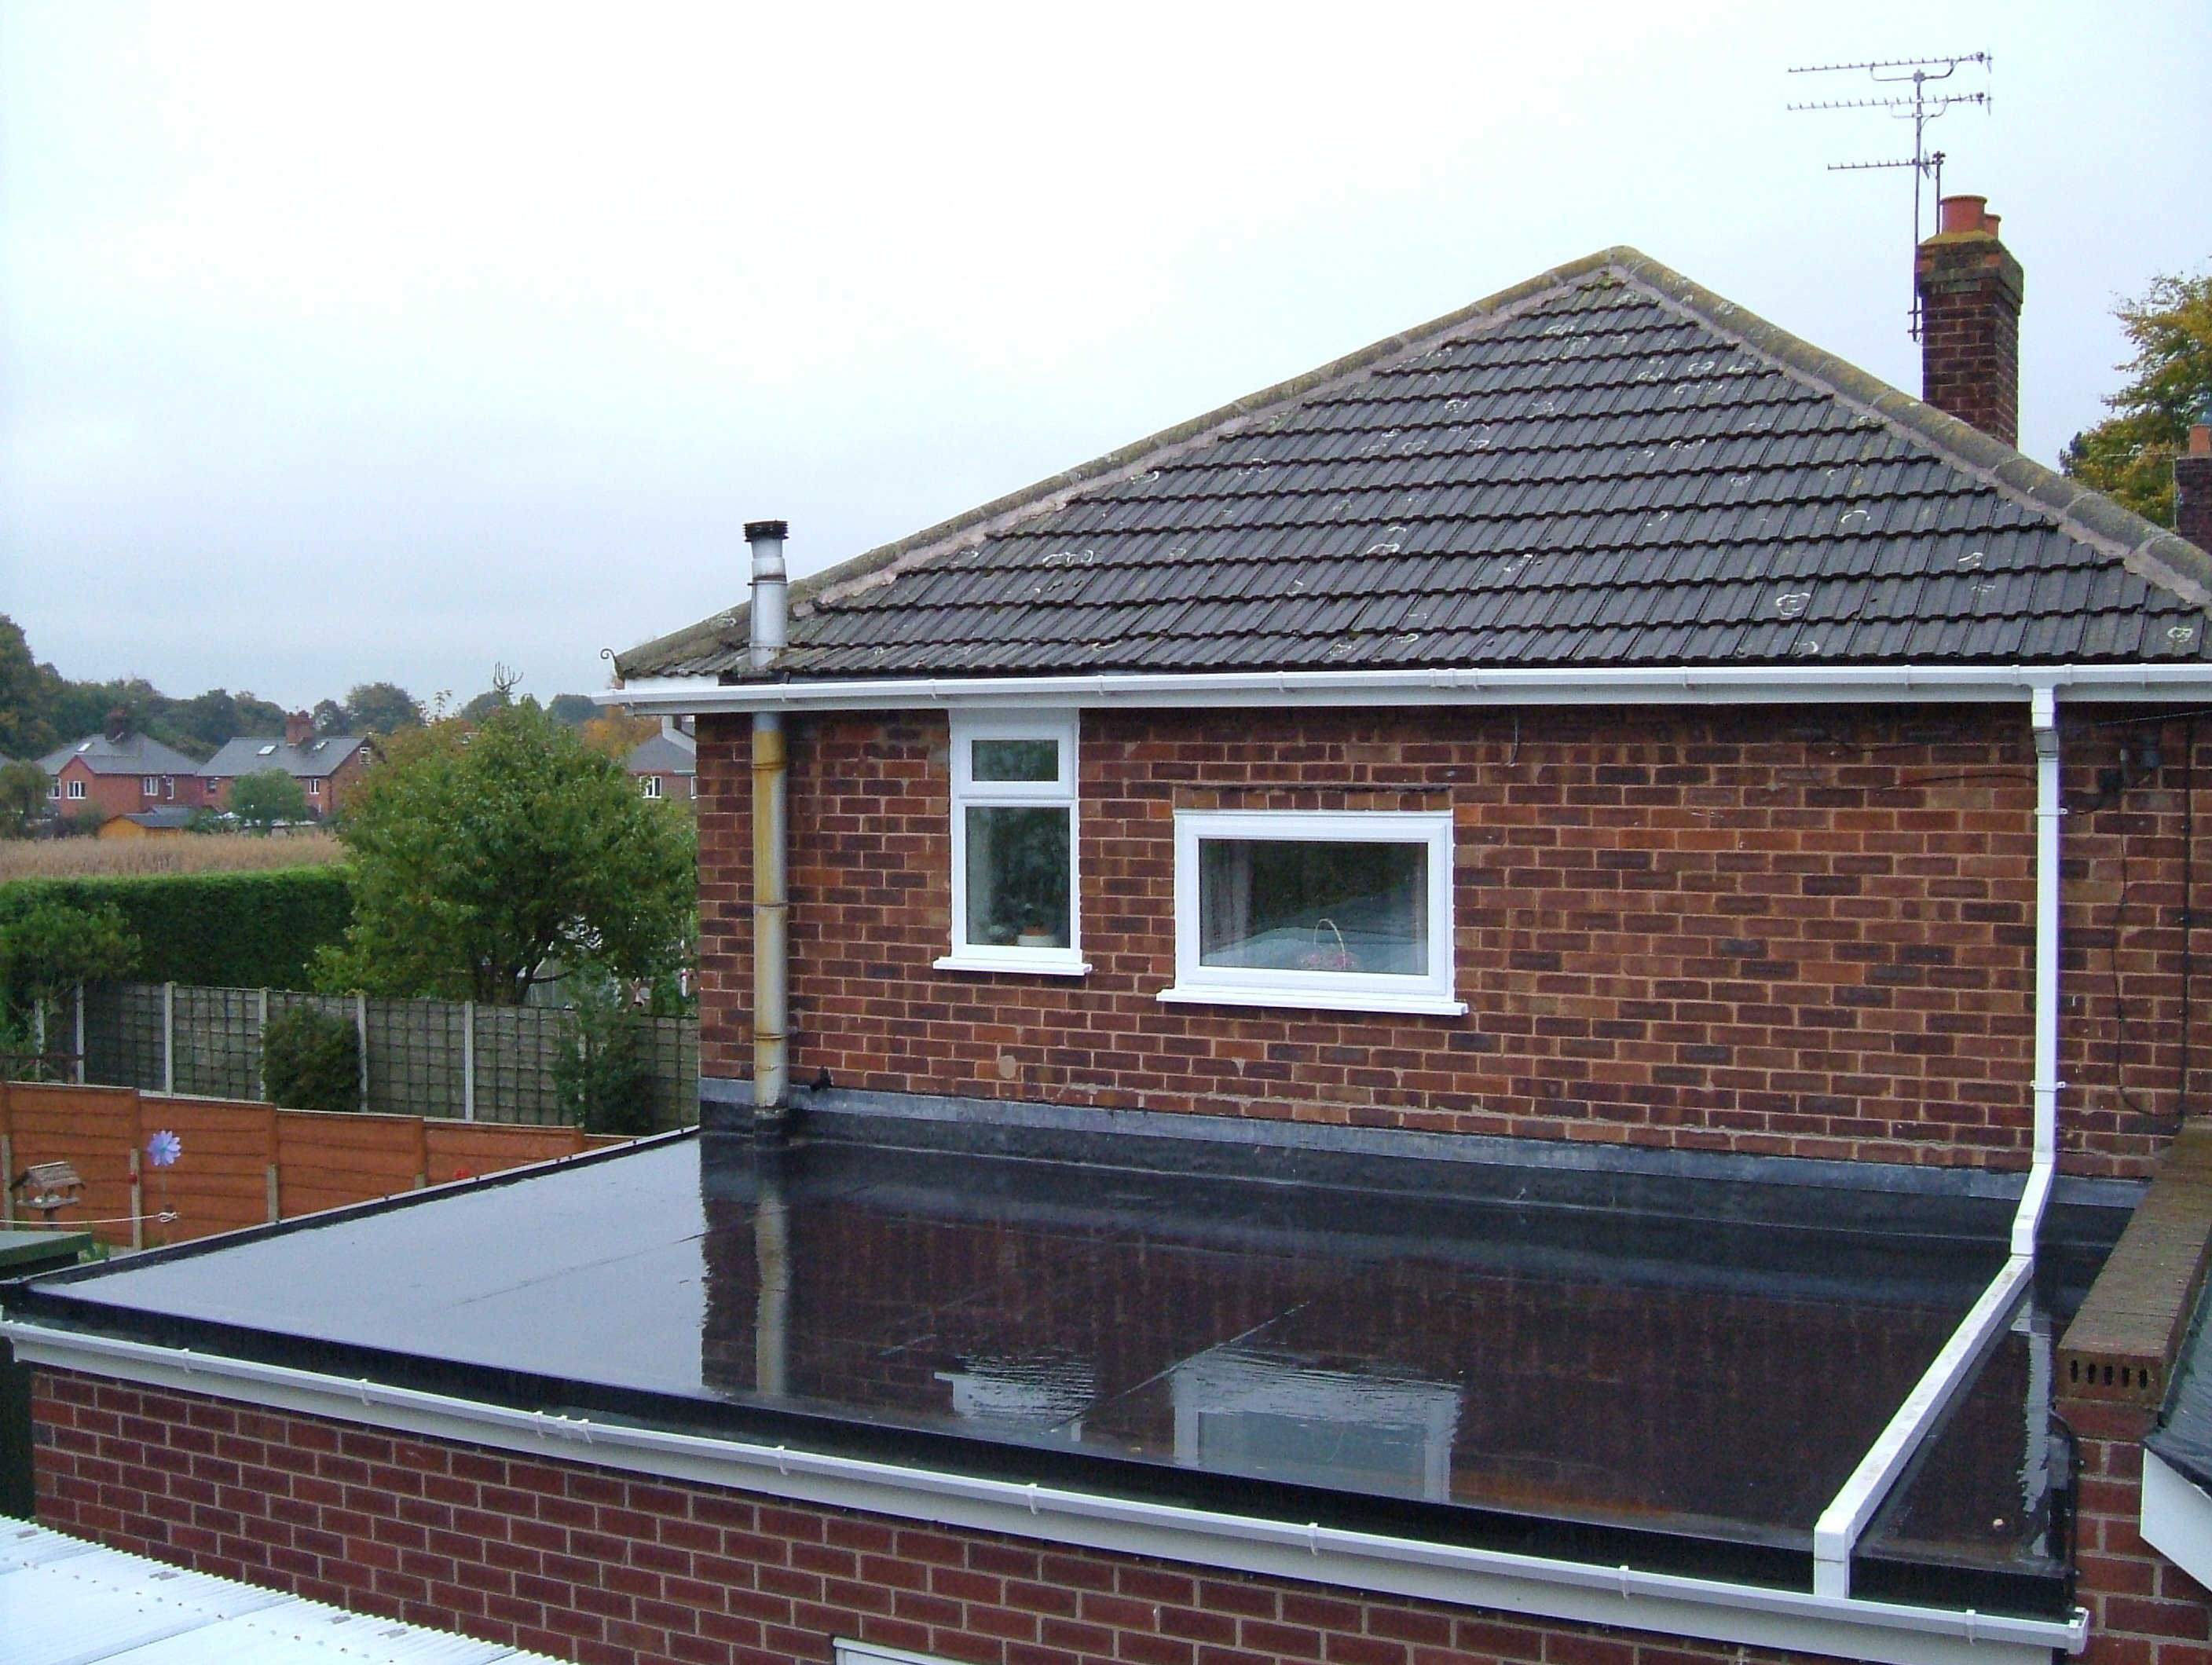 Black Rubber Roofing Epdm Commercial Grade Flat Roof